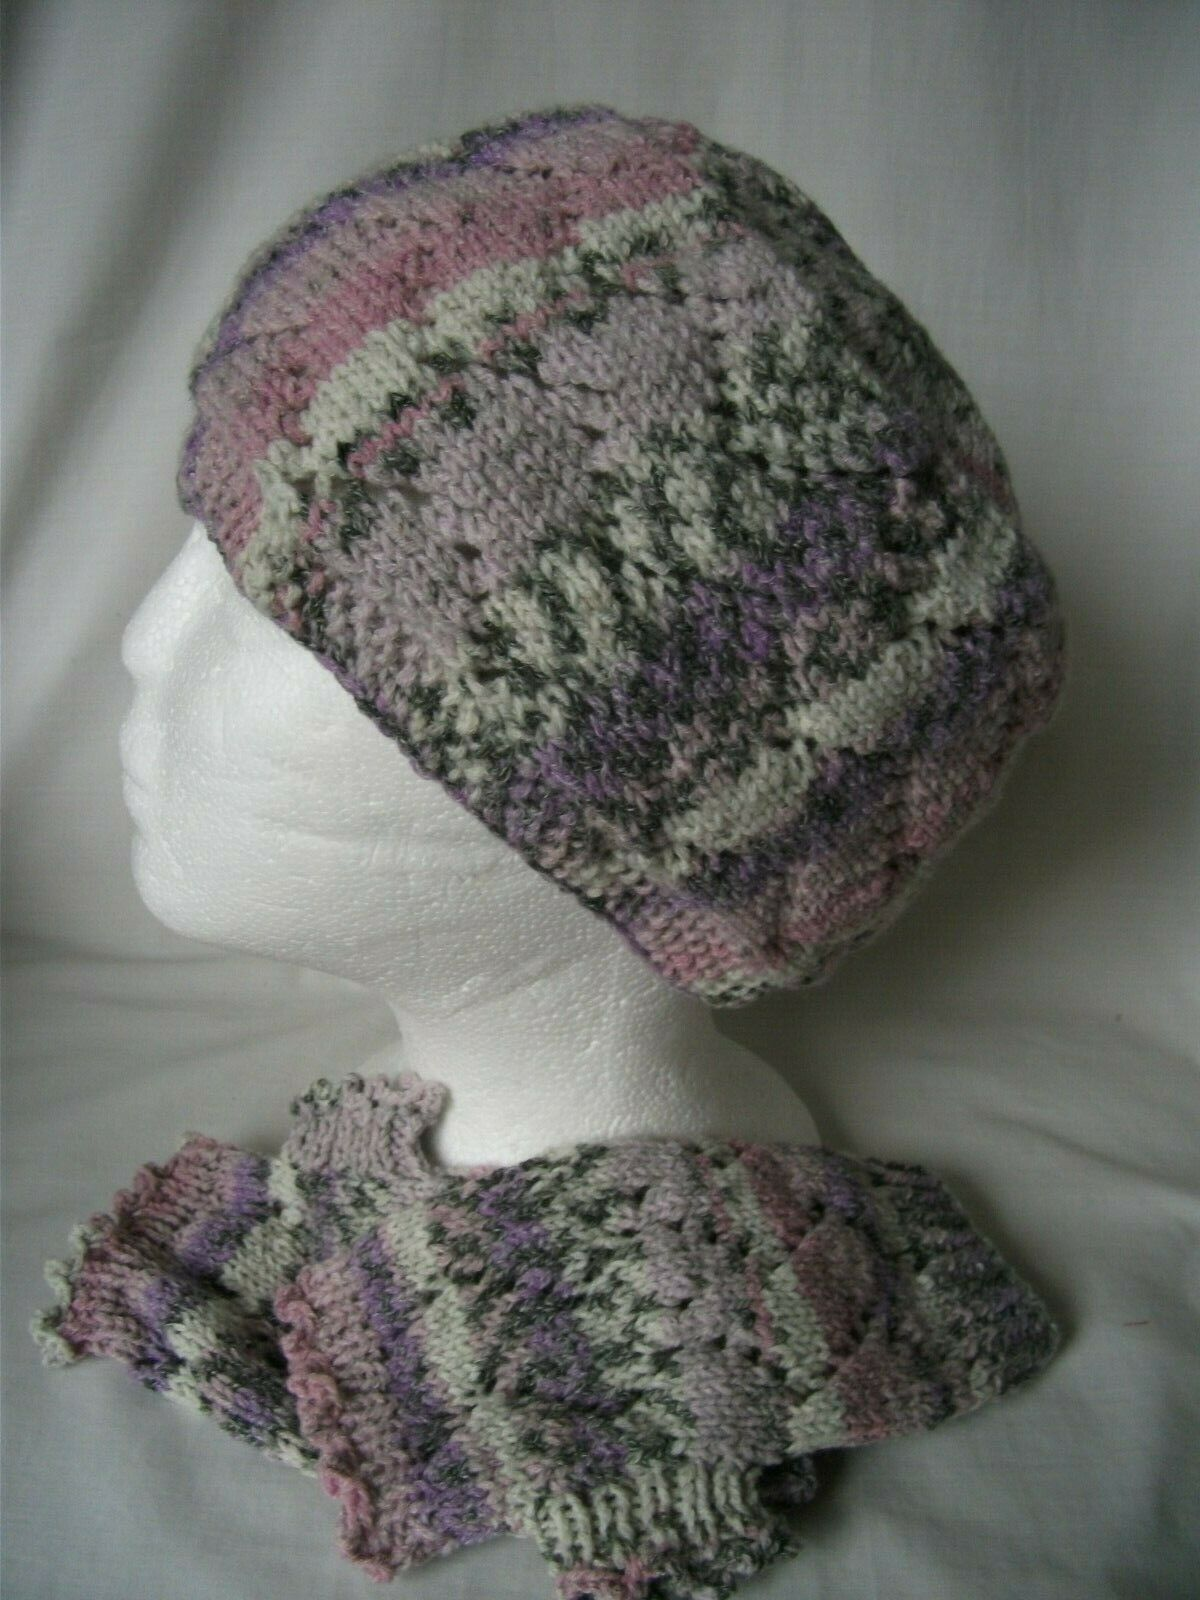 Hand-knitted Hat and Wrist Warmers Ref 2772